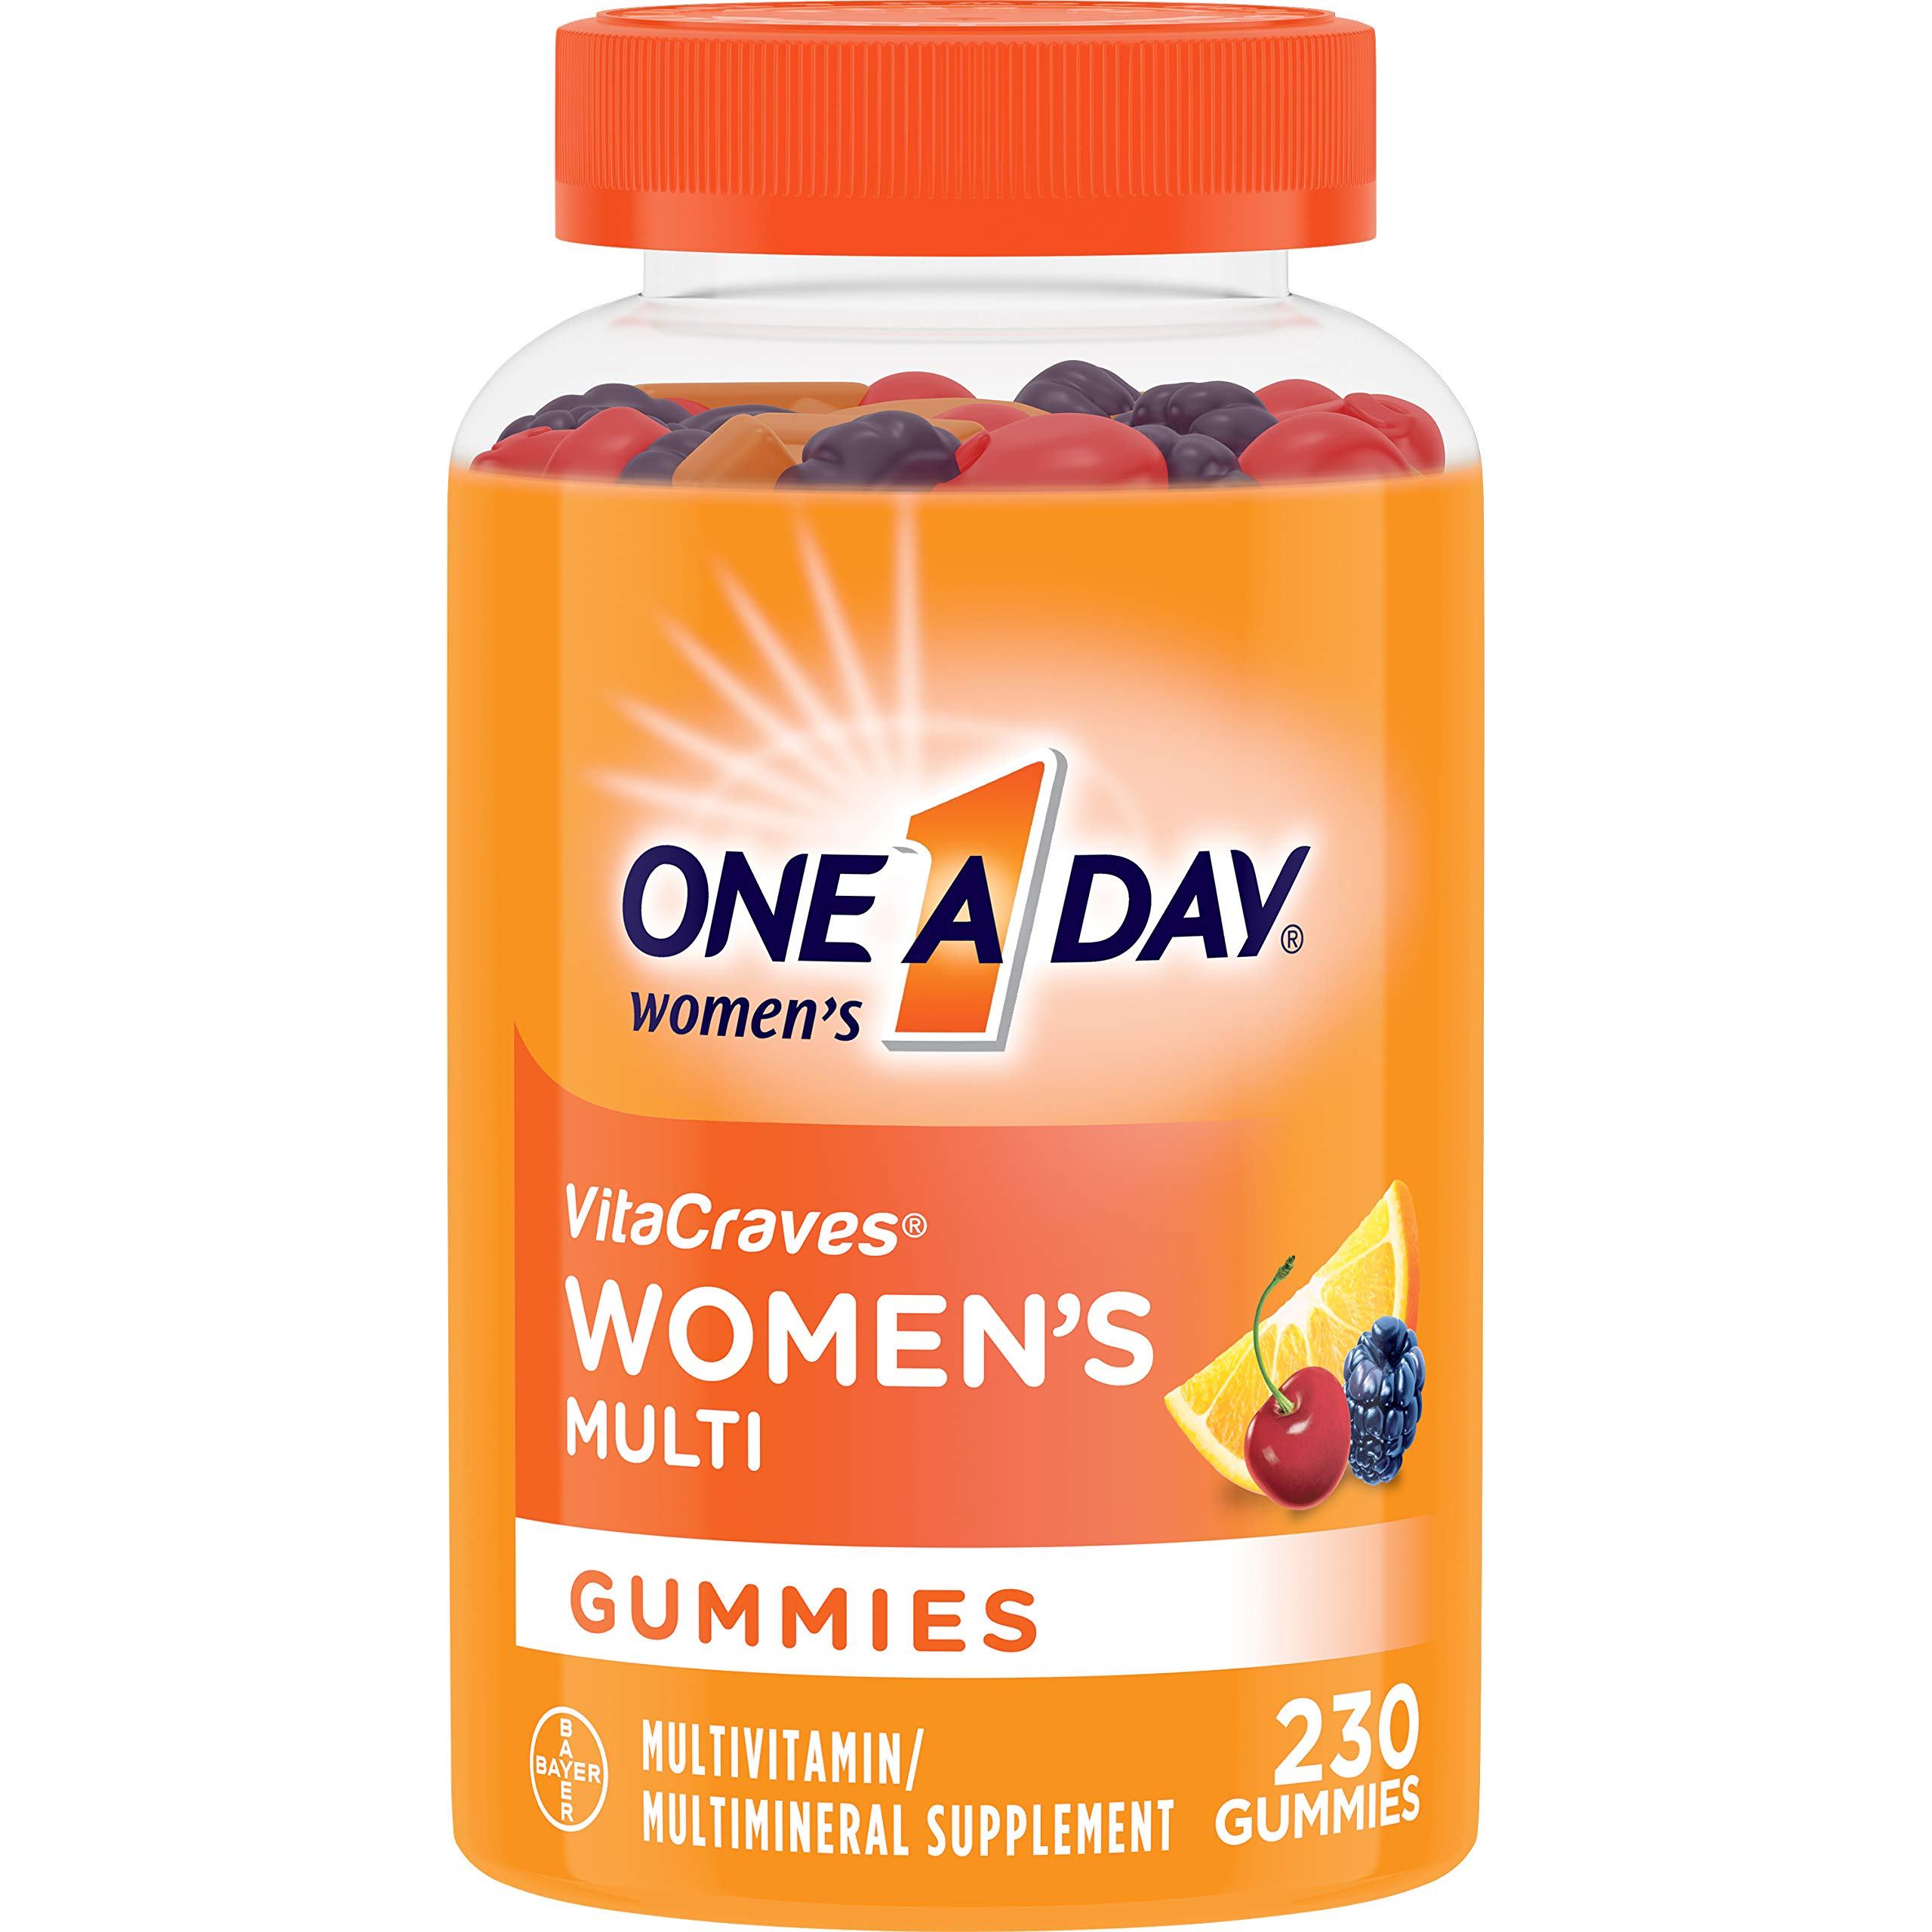 One A Day Women's Multivitamin Gummies, Supplement with Vitamin A, Vitamin C, Vitamin D, Vitamin E and Zinc for Immune Health Support*, Calcium & more, 230 count